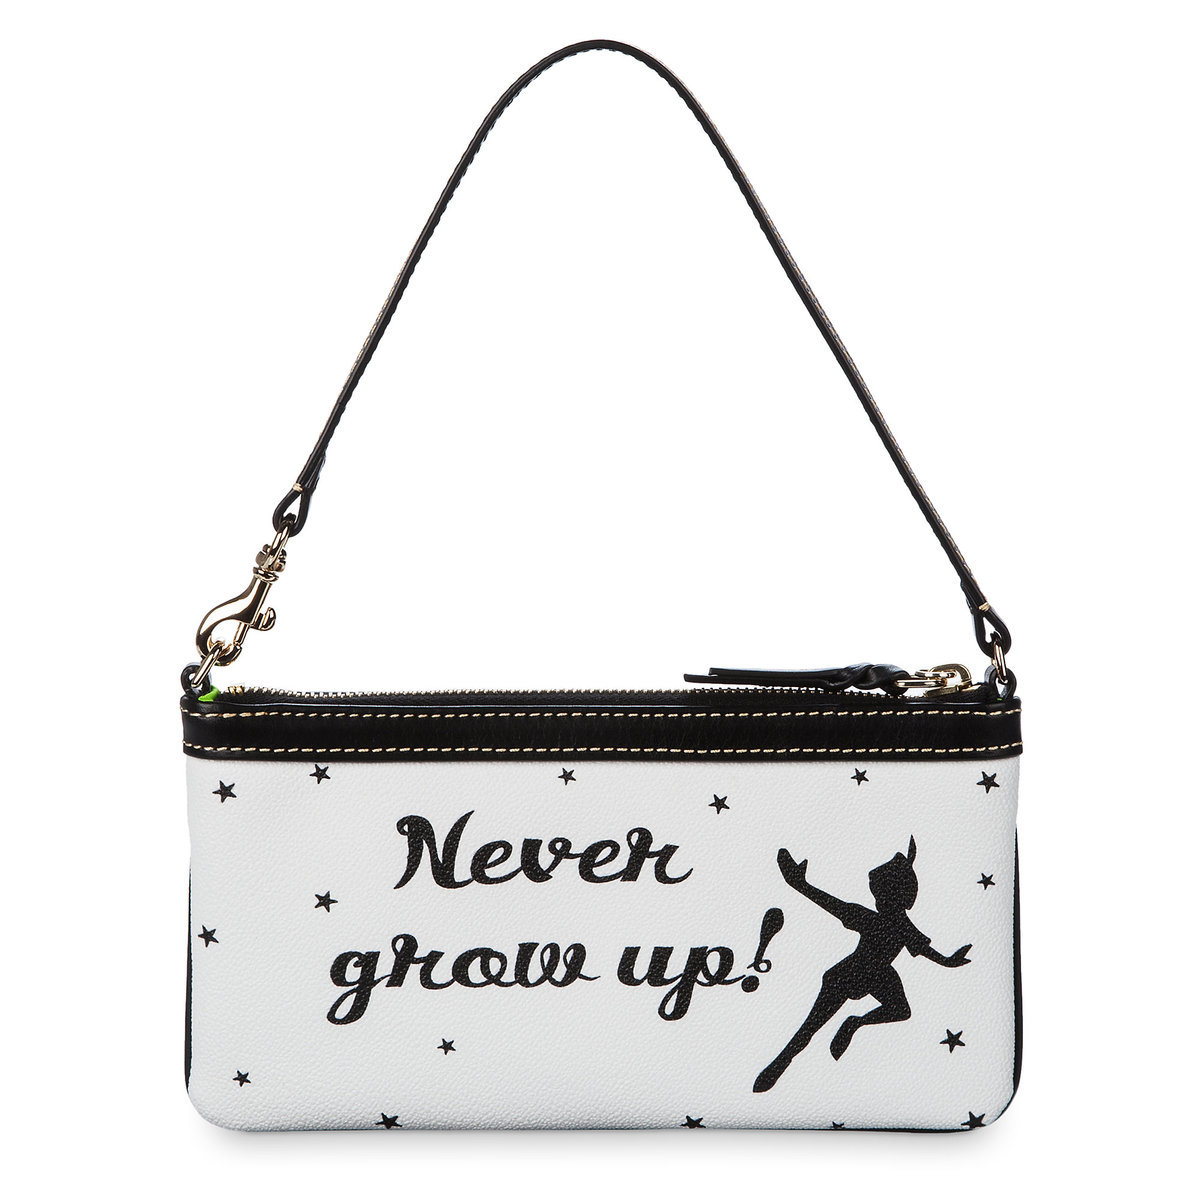 Wow Your Valentine with these Adorable Disney Handbags! #DisneyStyle 5